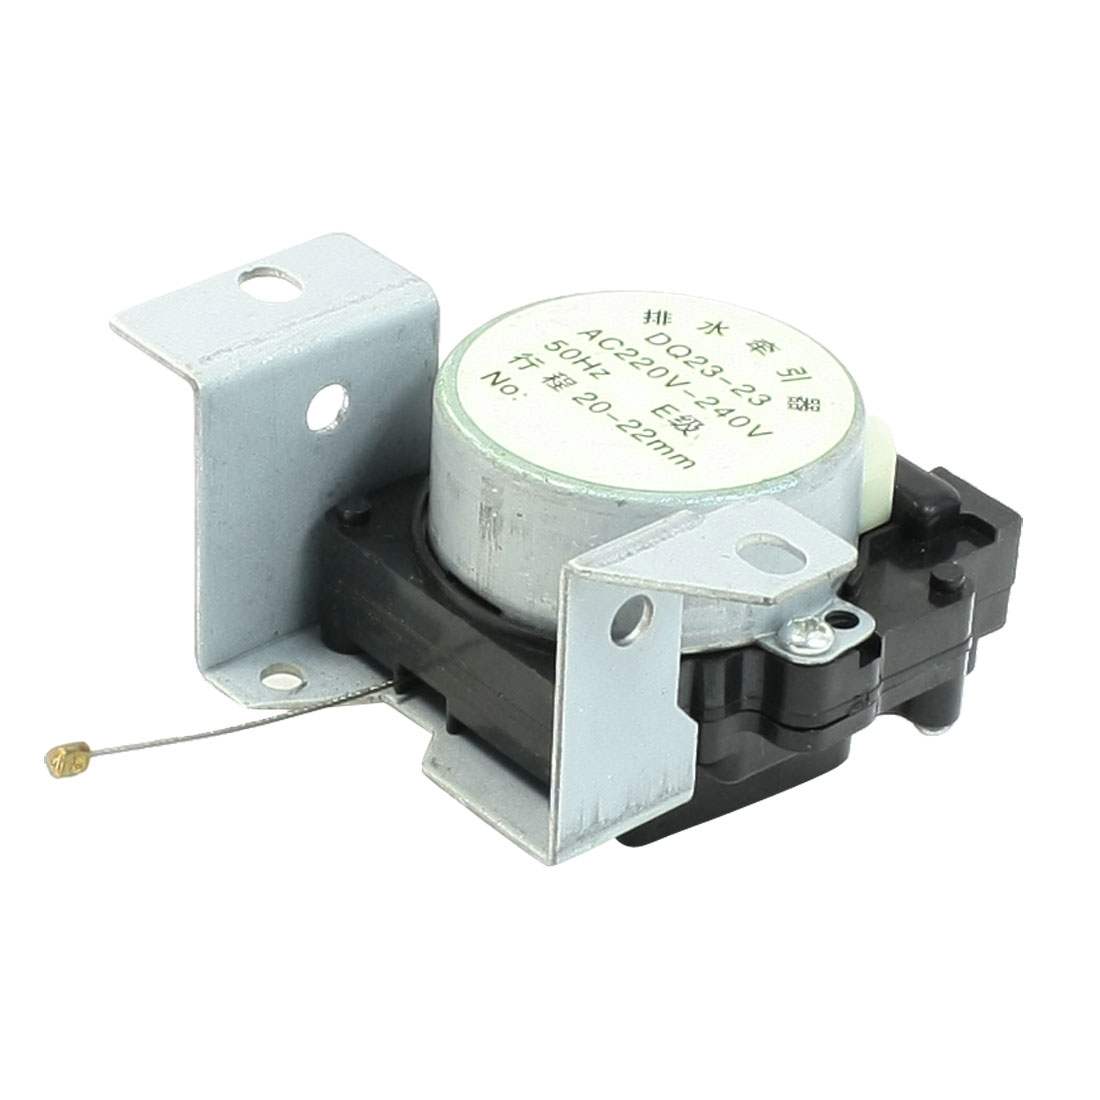 AC 220-240V Repairing Part Drain Valve Motor Tractor for Sharp Washer